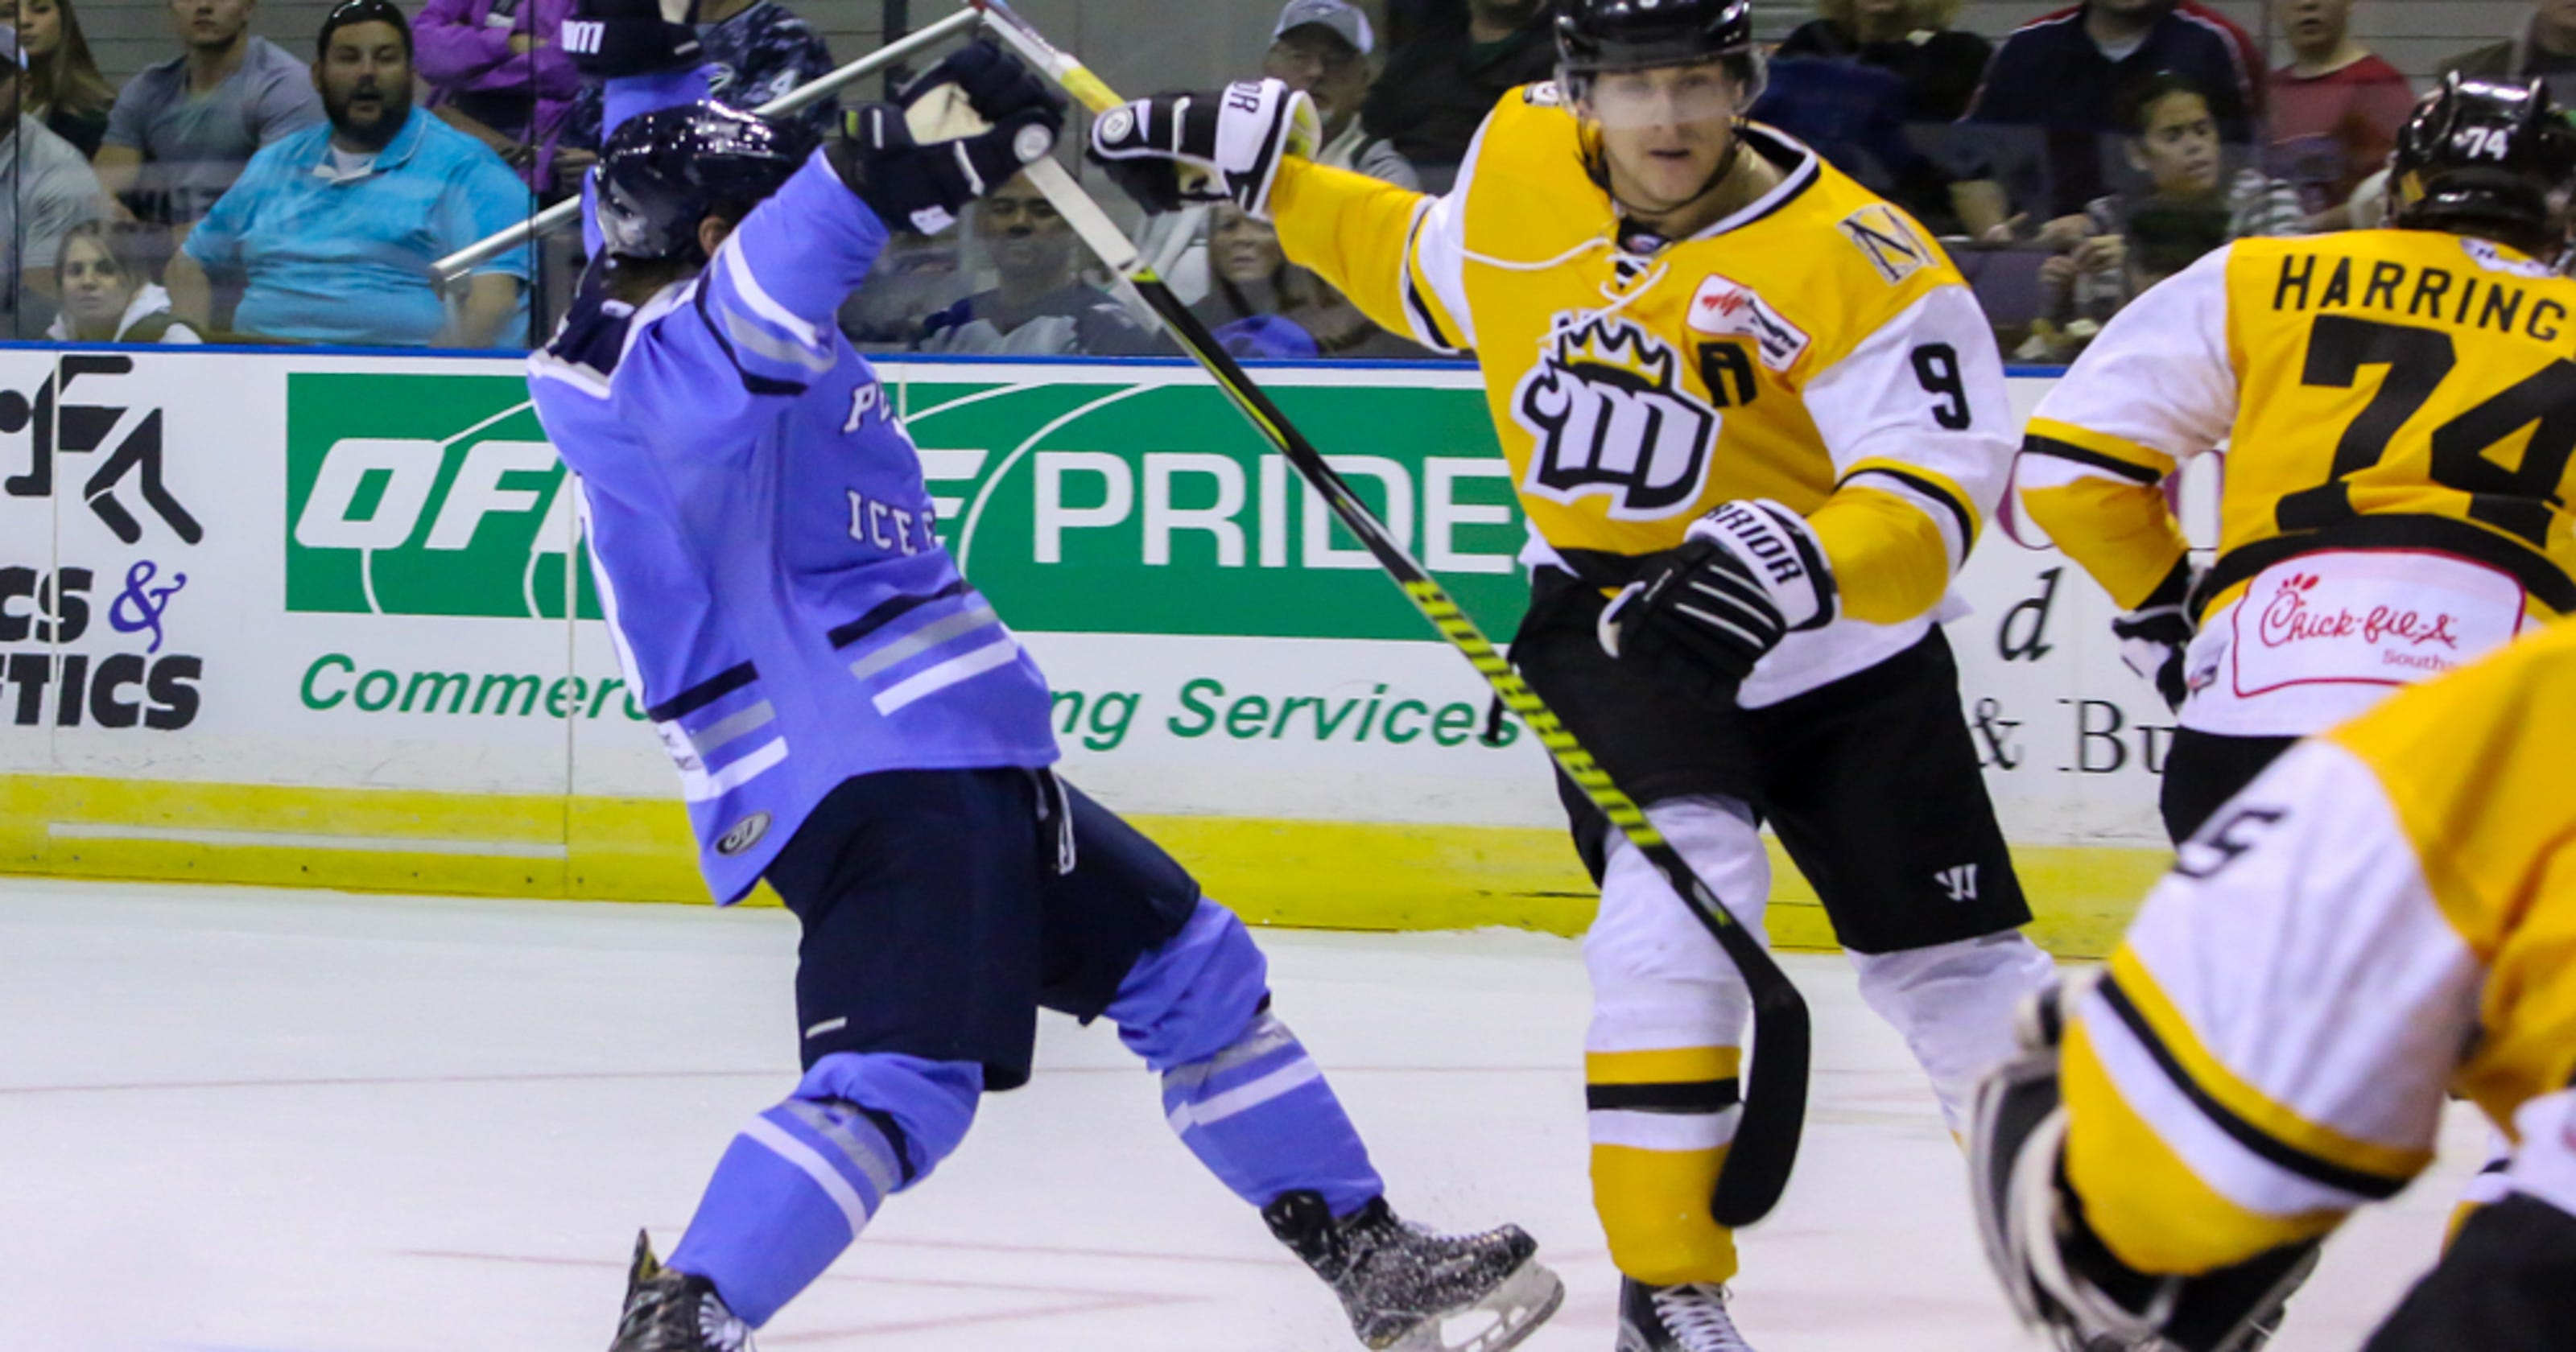 Pensacola Ice Flyers forward Ryan Marcuz welcomes role with new team 151f25ddc